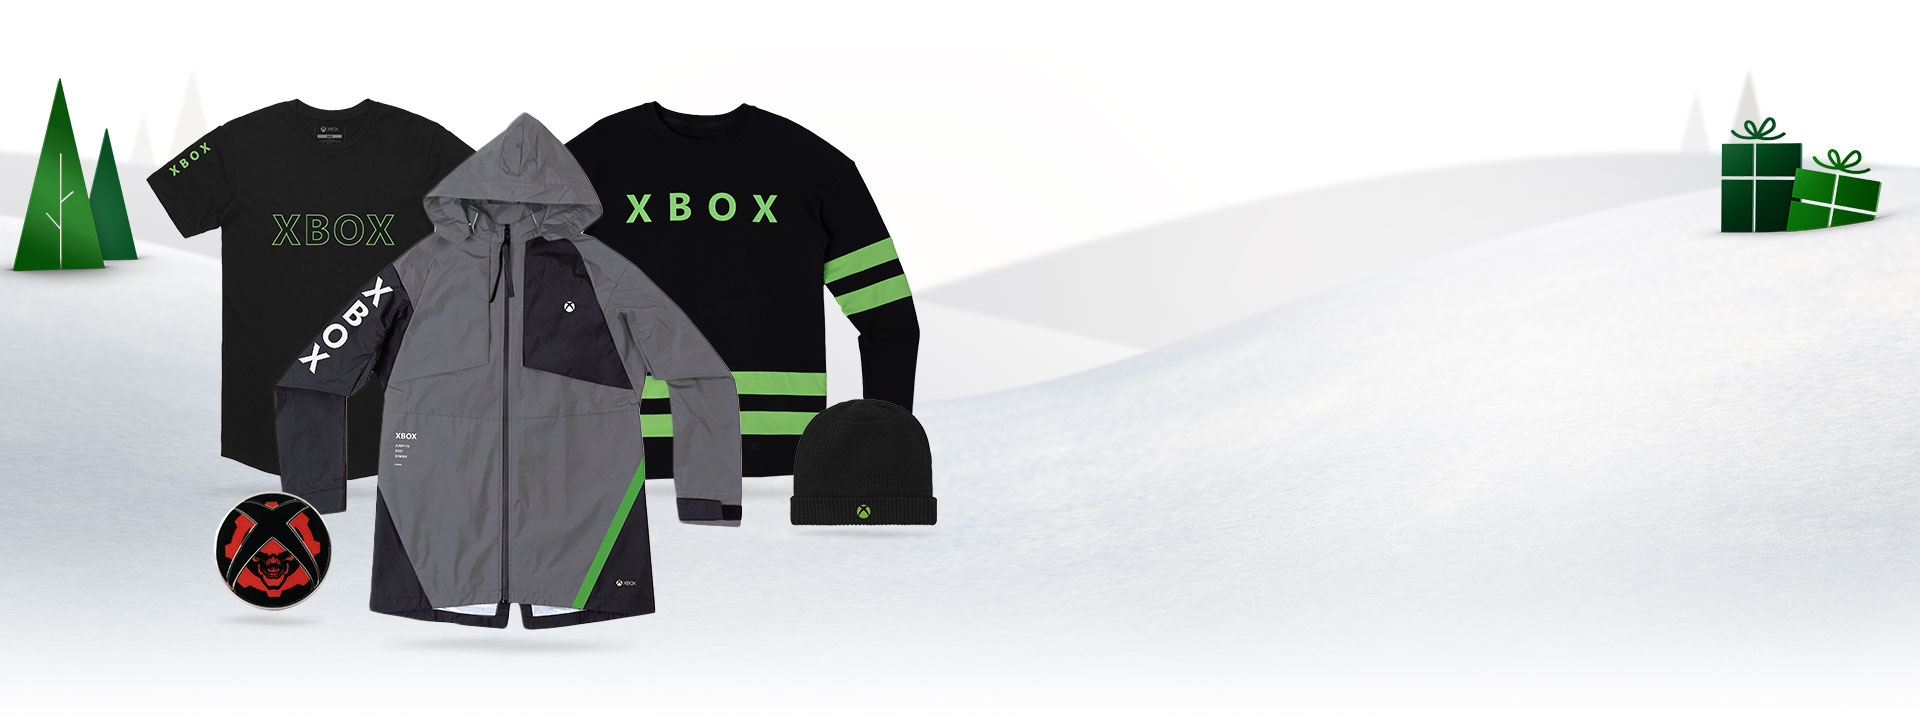 An Xbox tshirt, long sleeve, jacket, and beanie in front of a snowy background with trees and presents